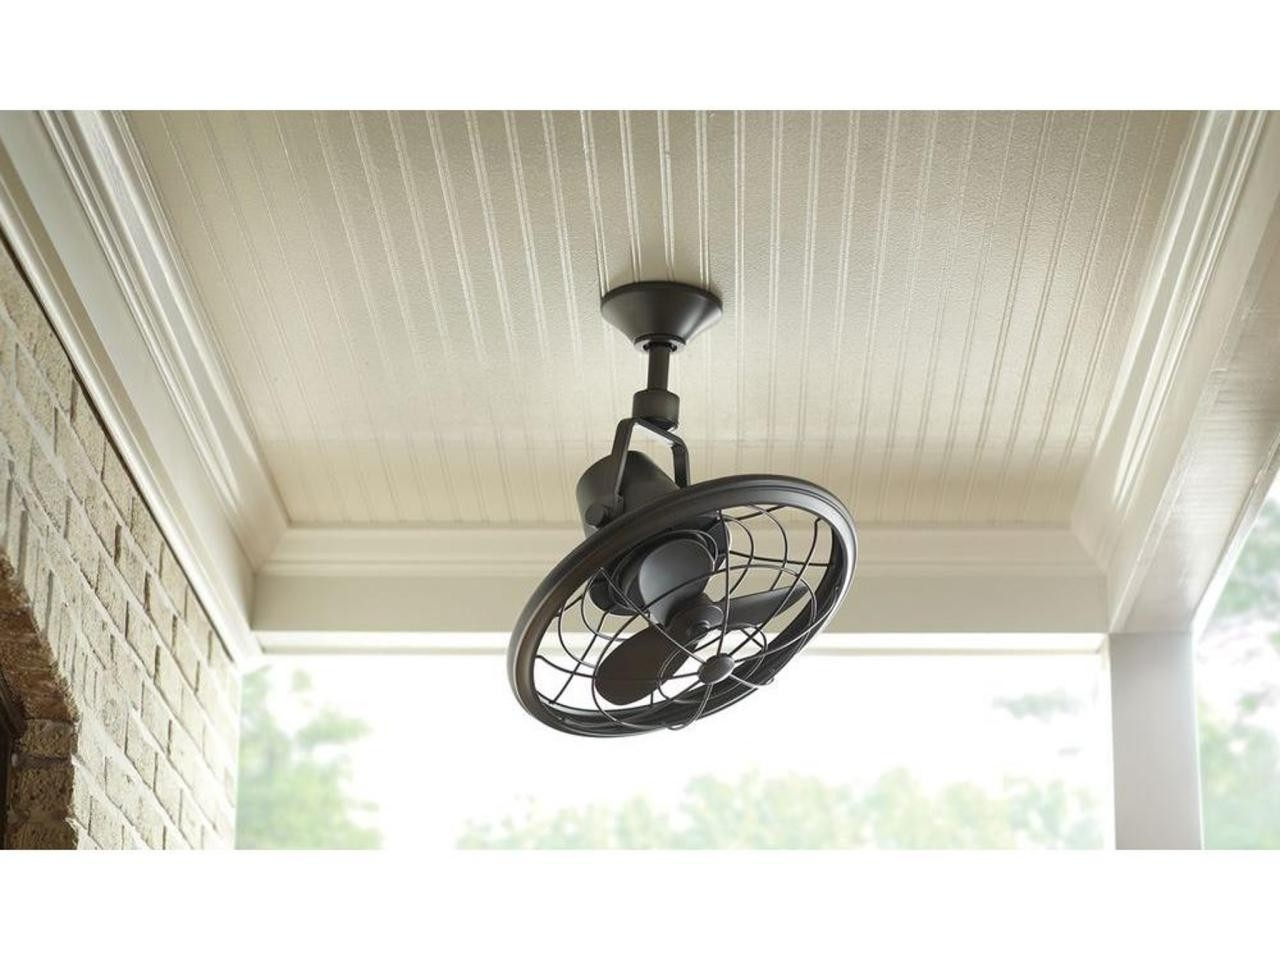 Trendy Vintage Look Outdoor Ceiling Fans For White Porch Ceiling With Oscillating Ceiling Fan A Vintage Style (View 13 of 20)